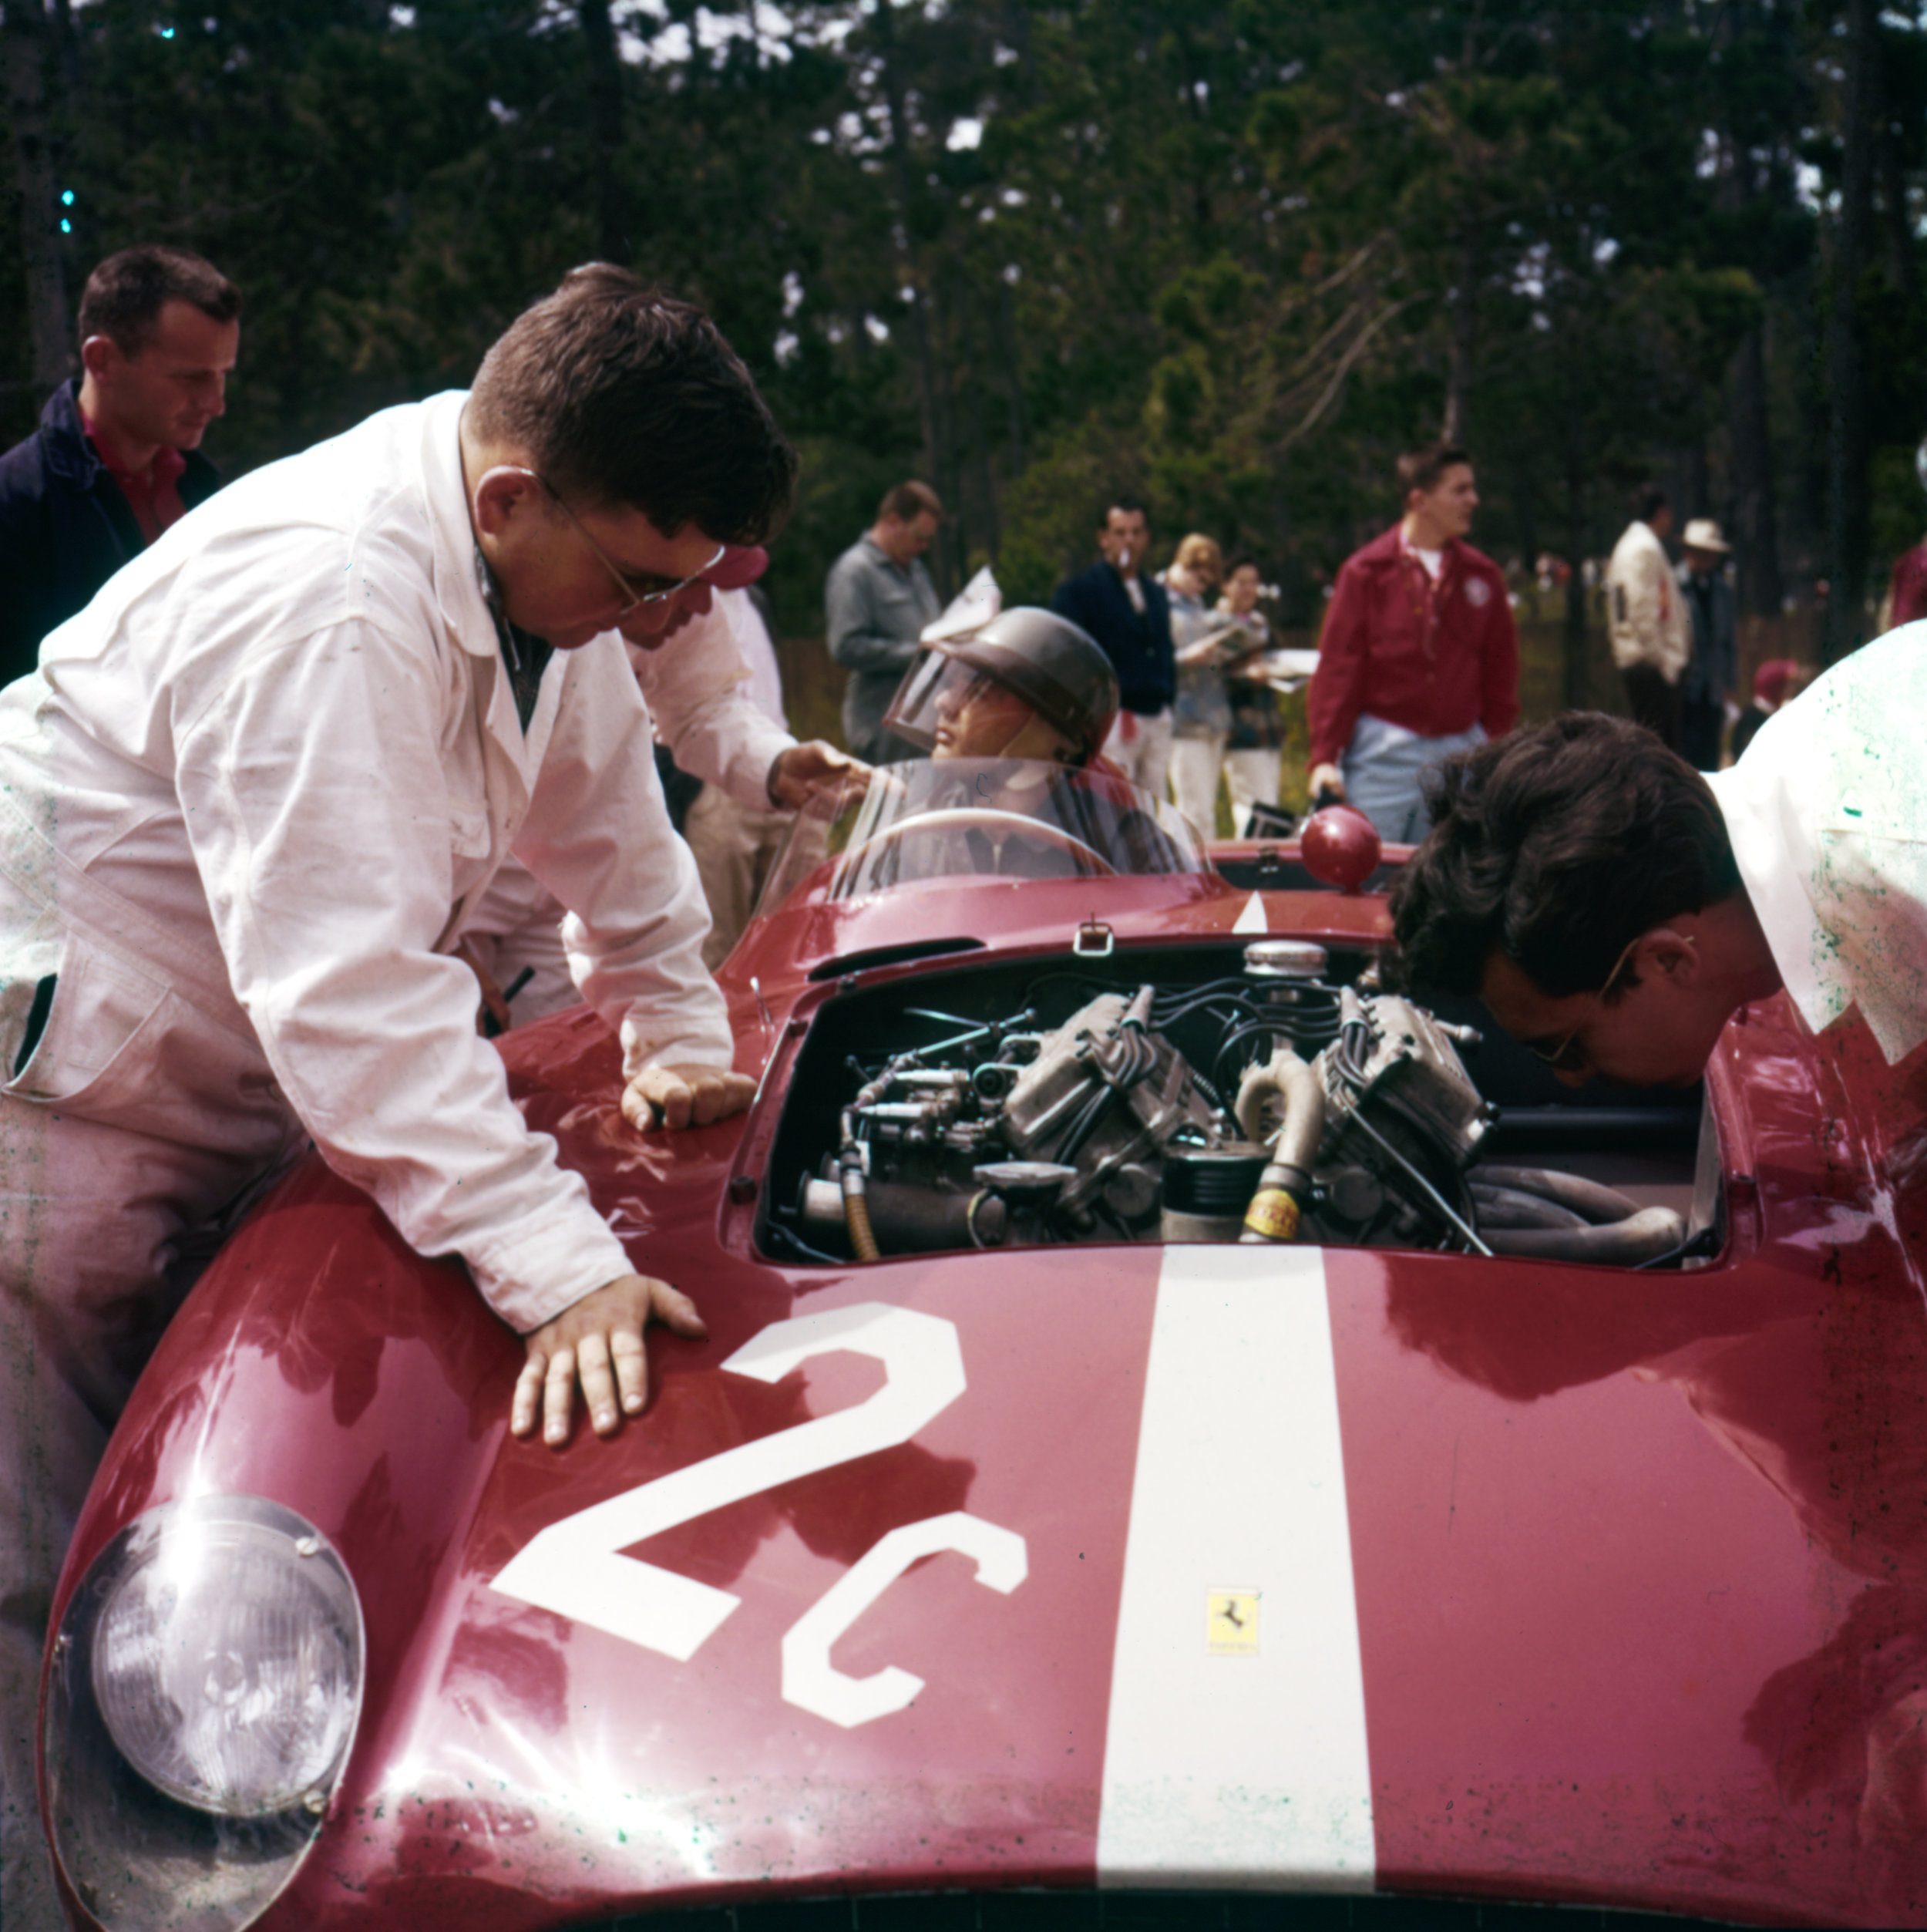 Phil Hill in a 860 Monza with hood open   Pebble Beach 1956: The mighty Ferrari 3.5-liter-four-cylinder 860 Monza of west coast Ferrari distributor John von Neumann. Phil Hill was his driver, and finished second to Carroll Shelby.